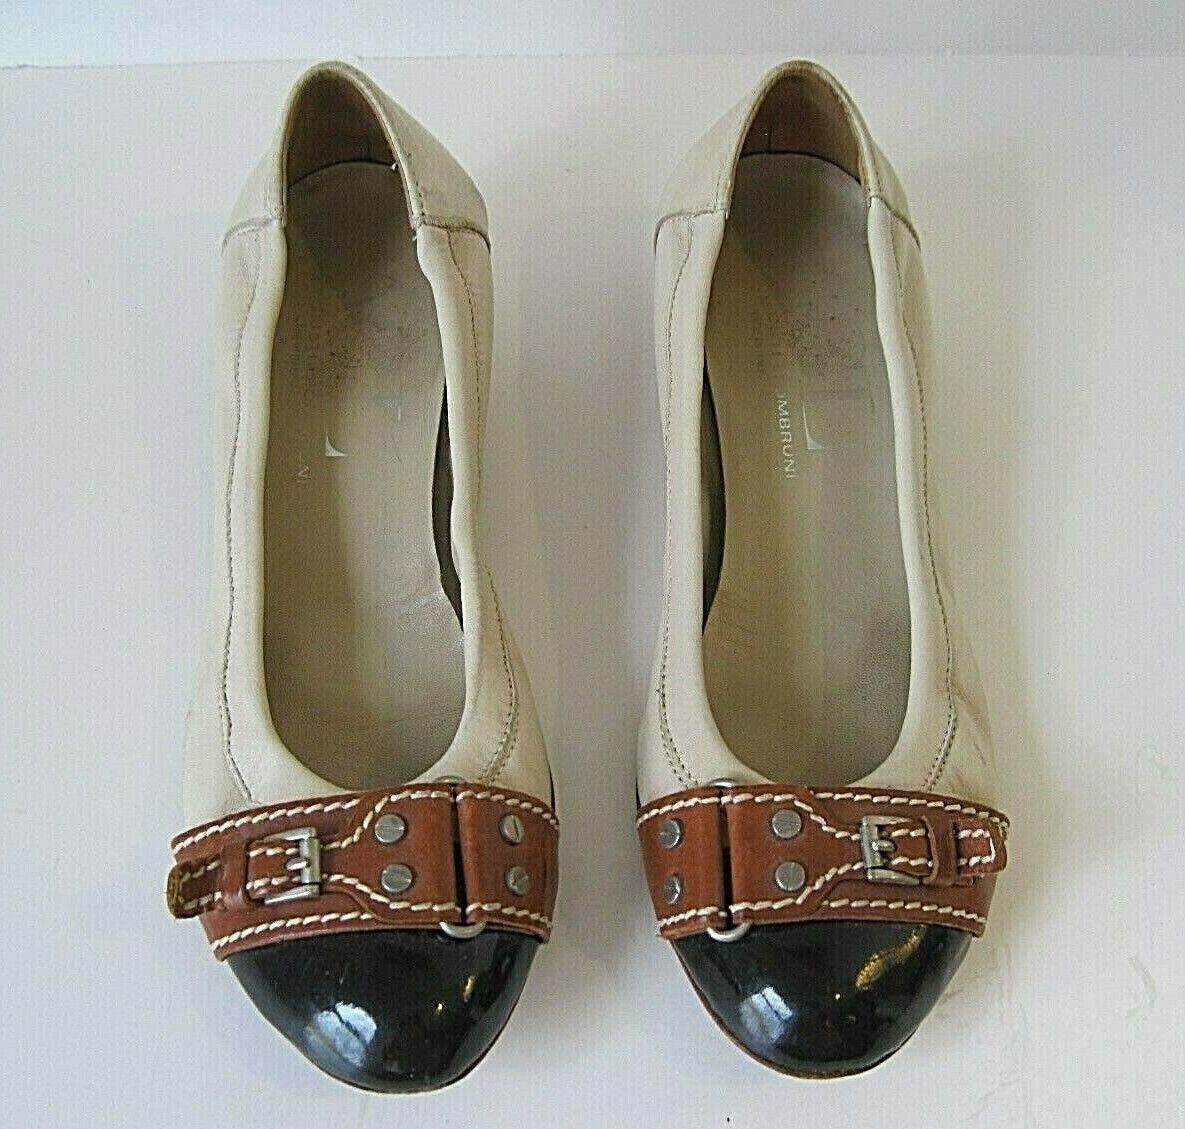 Attilio Giusti Leombruni AGL Camel Leather Black Cap Toe Pumps Front Buckle 40